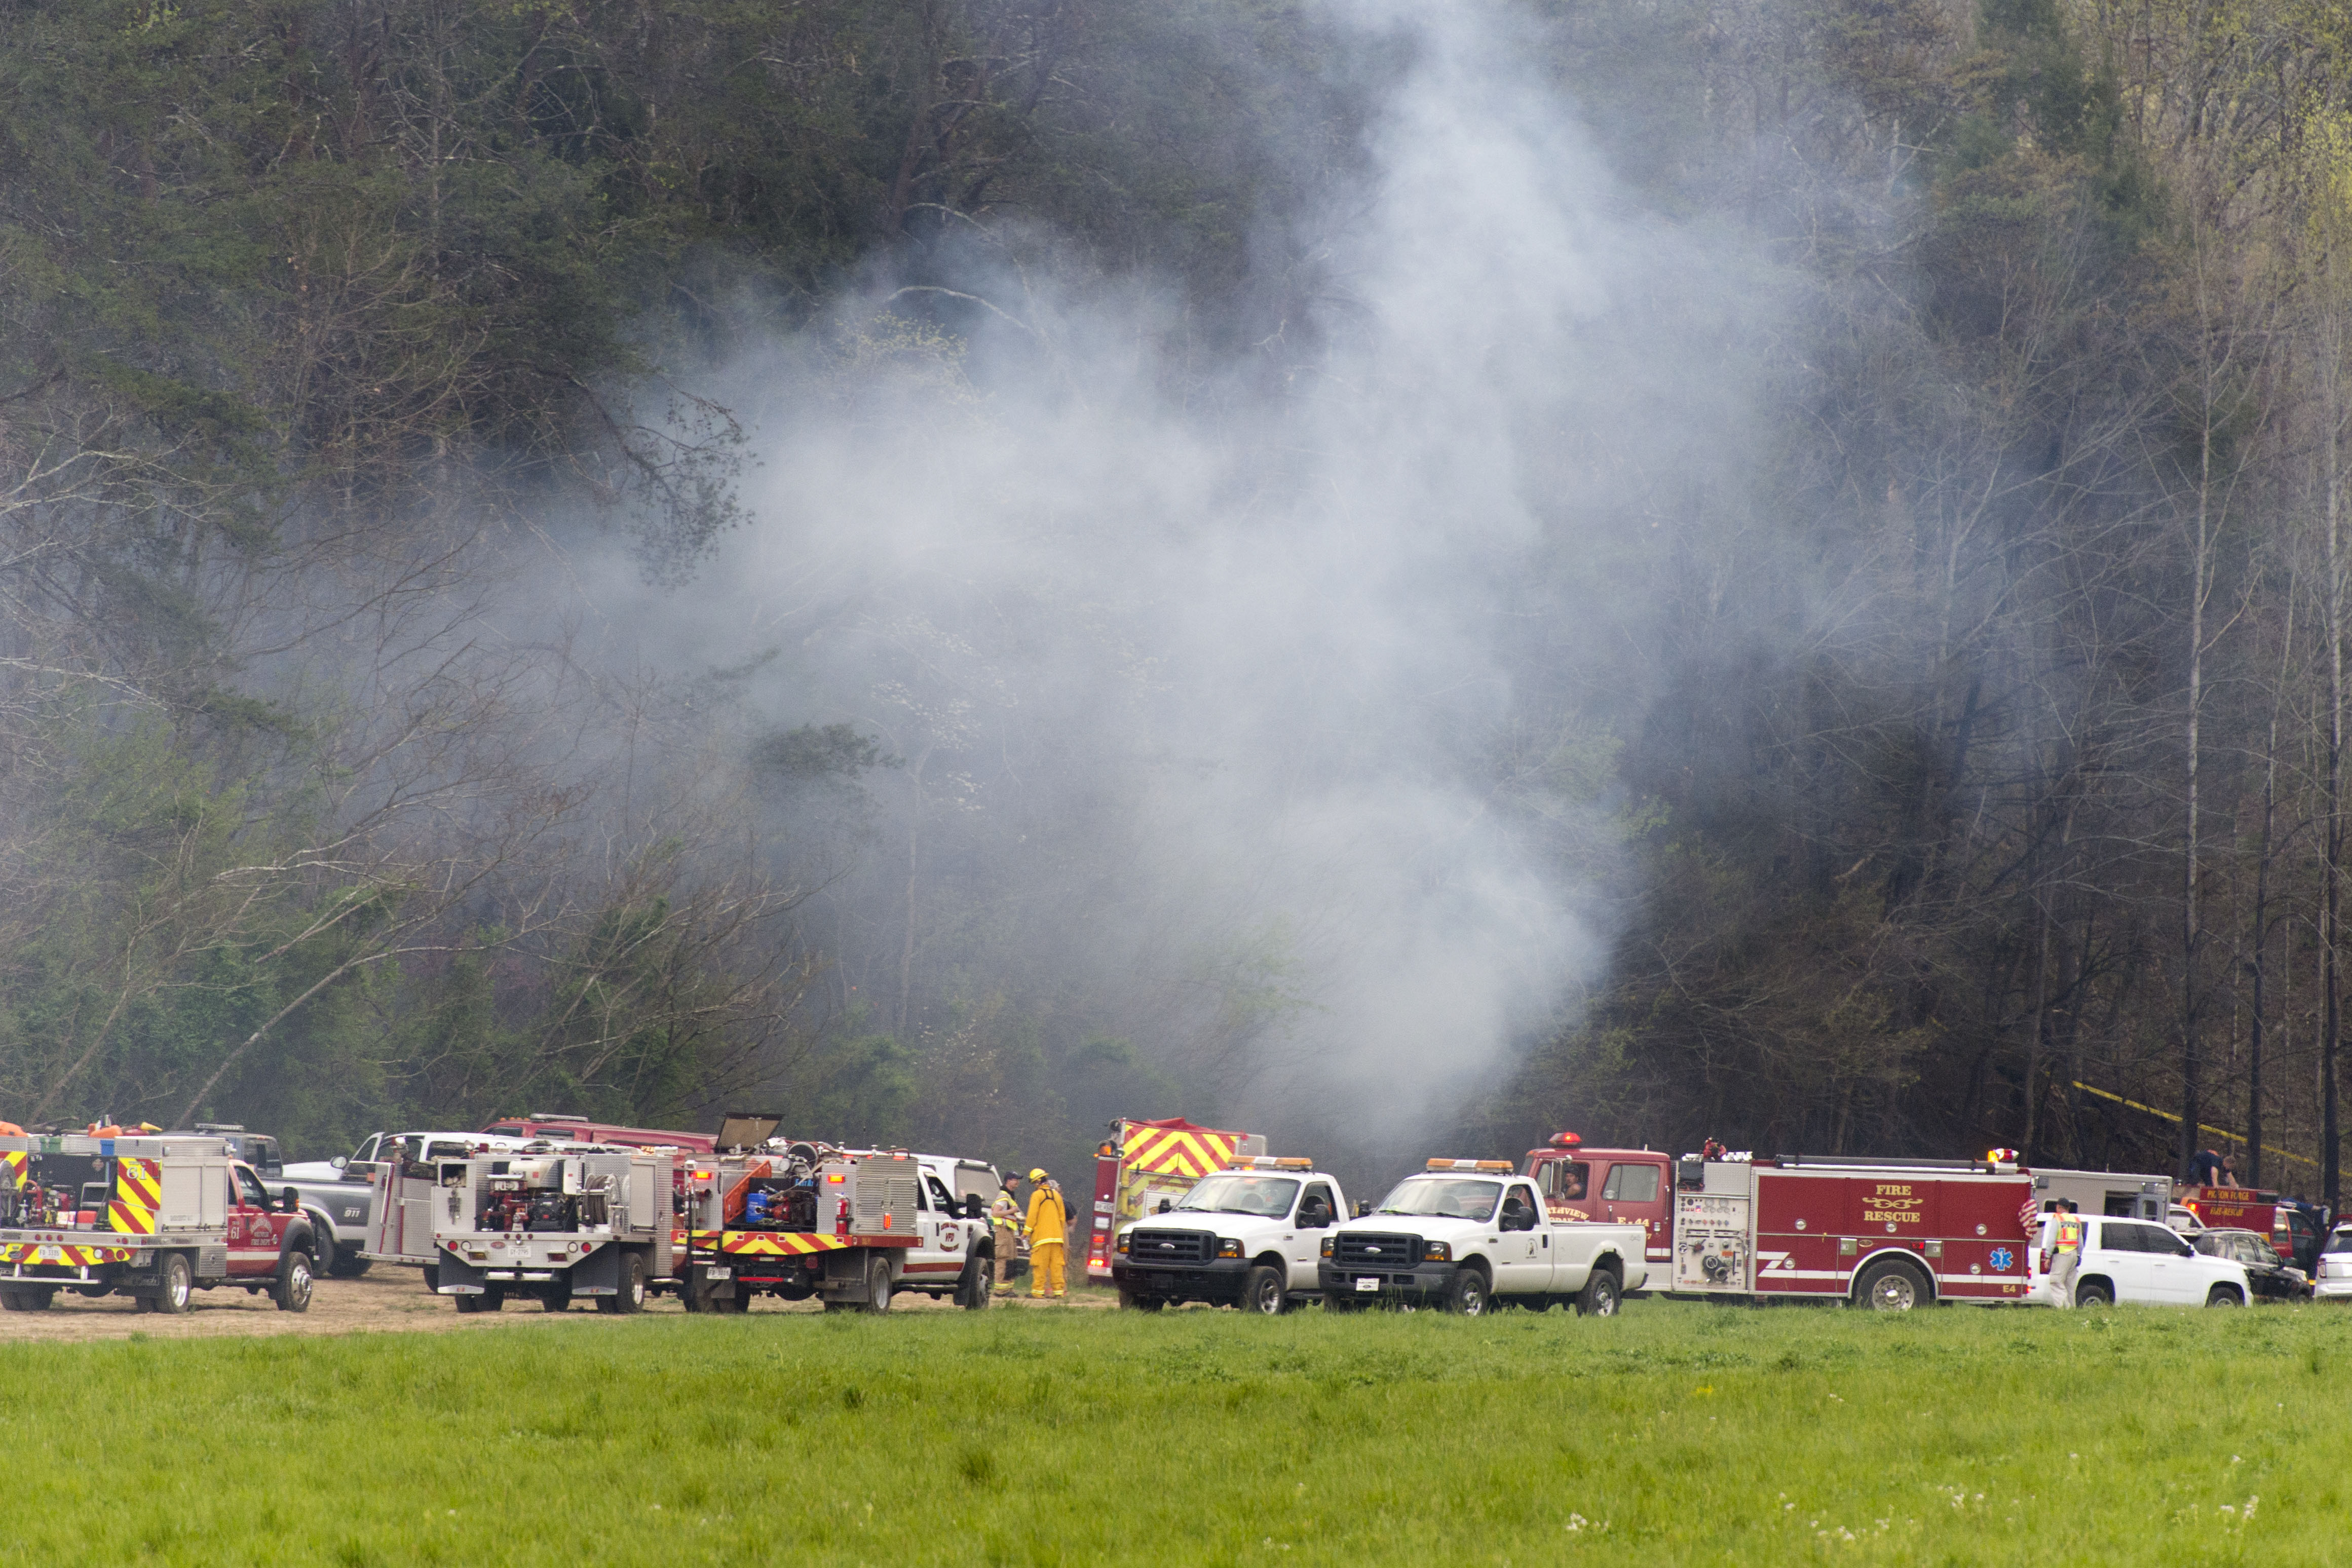 Emergency vehicles respond to the scene of a fatal helicopter crash, April 4, 2016, in Pigeon Forge, Tenn.